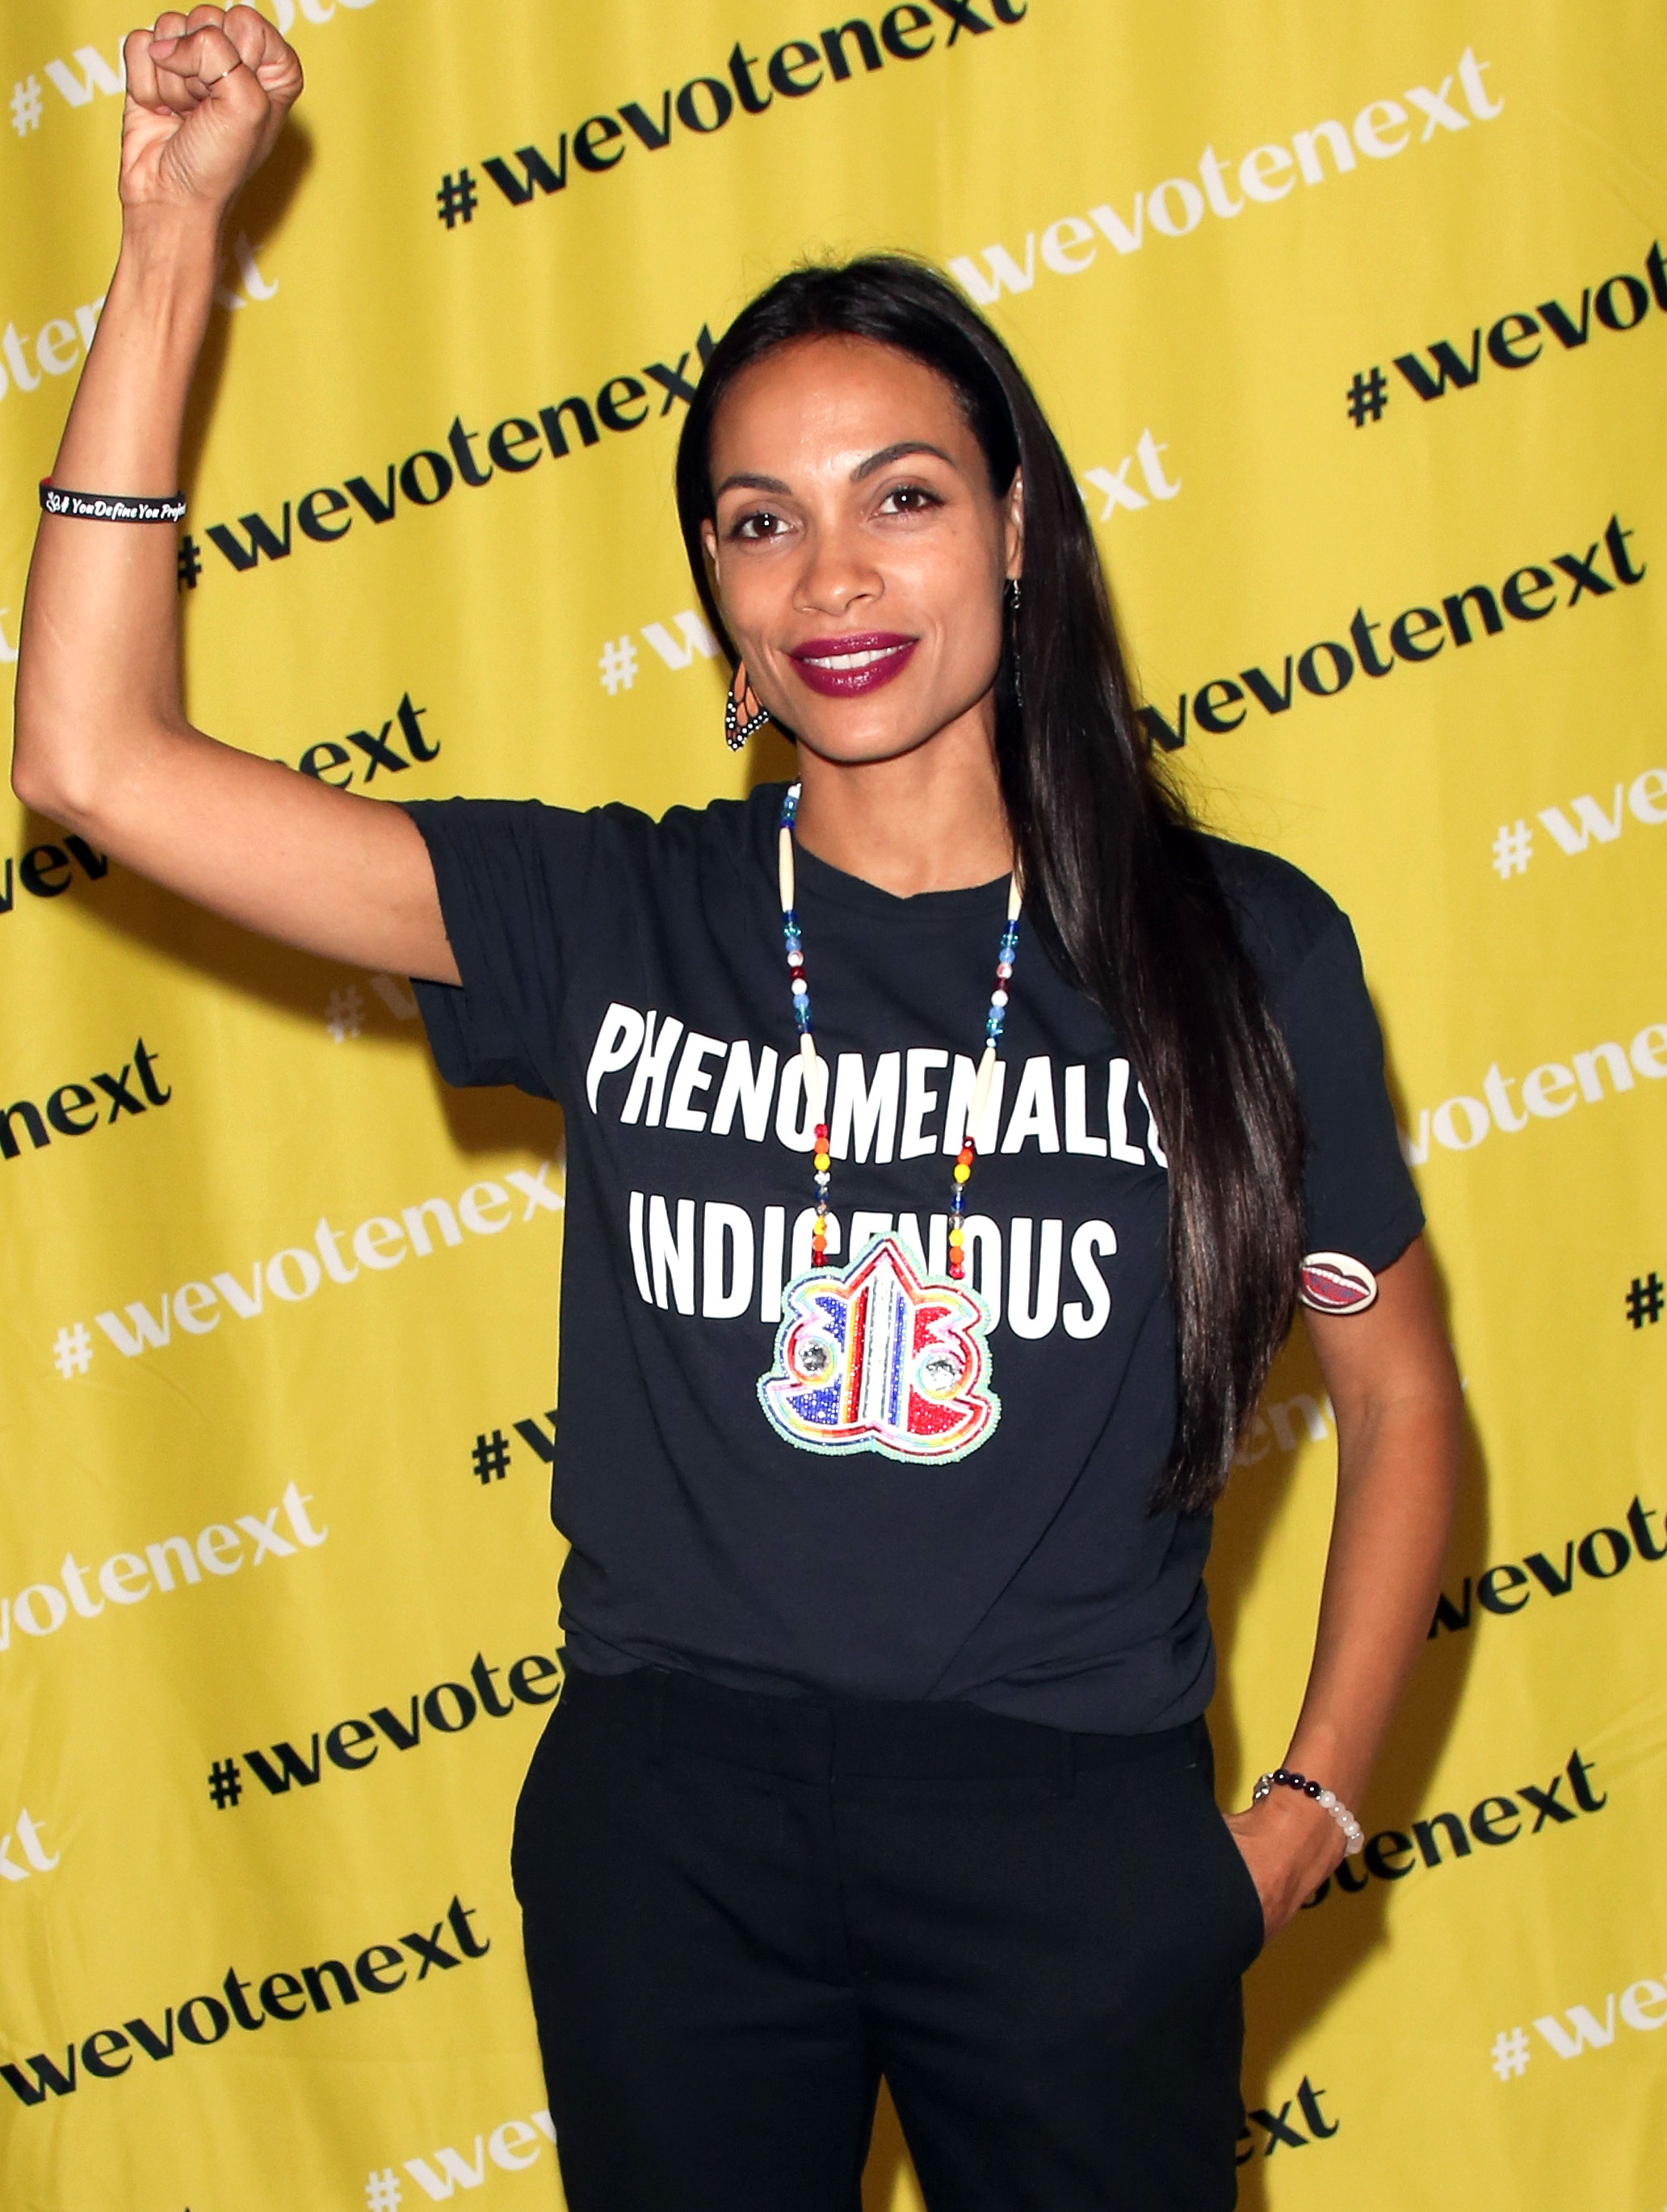 """Rosario-Dawson - With Indigenous Peoples' Day just a week away, Dawson showed her support over the weekend. The actress attended the We Vote Next Summit event presented by Eigteen X 18 in L.A. wearing a tee that featured big bold text that reads """"Phenomenally Indigenous"""" on September 29, 2018."""